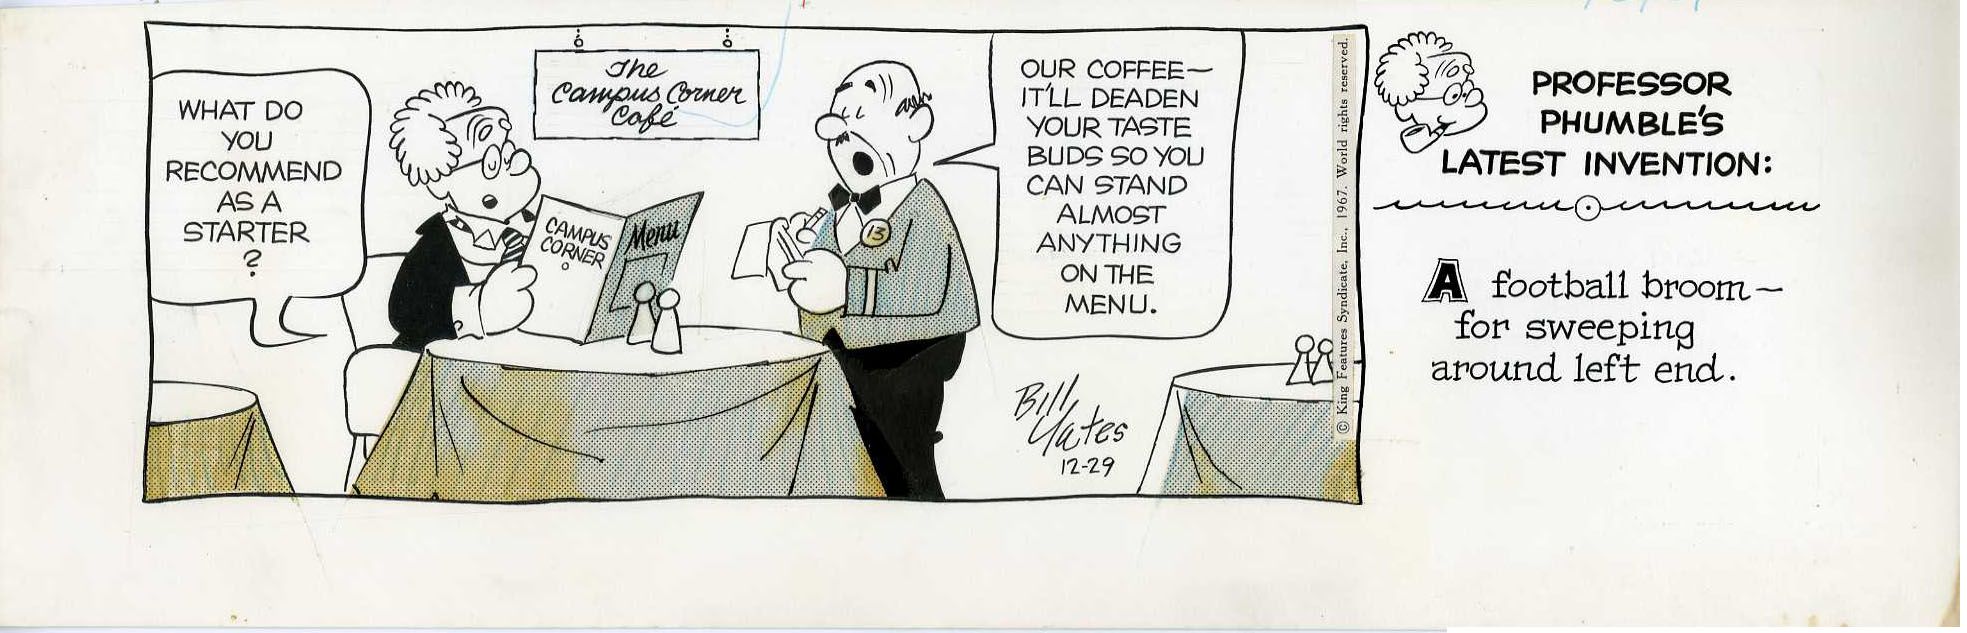 BILL YATES - PROFESSOR PHUMBLE DAILY ORIG ART 12-29-67 CAMPUS CORNER CAFE COFFEE